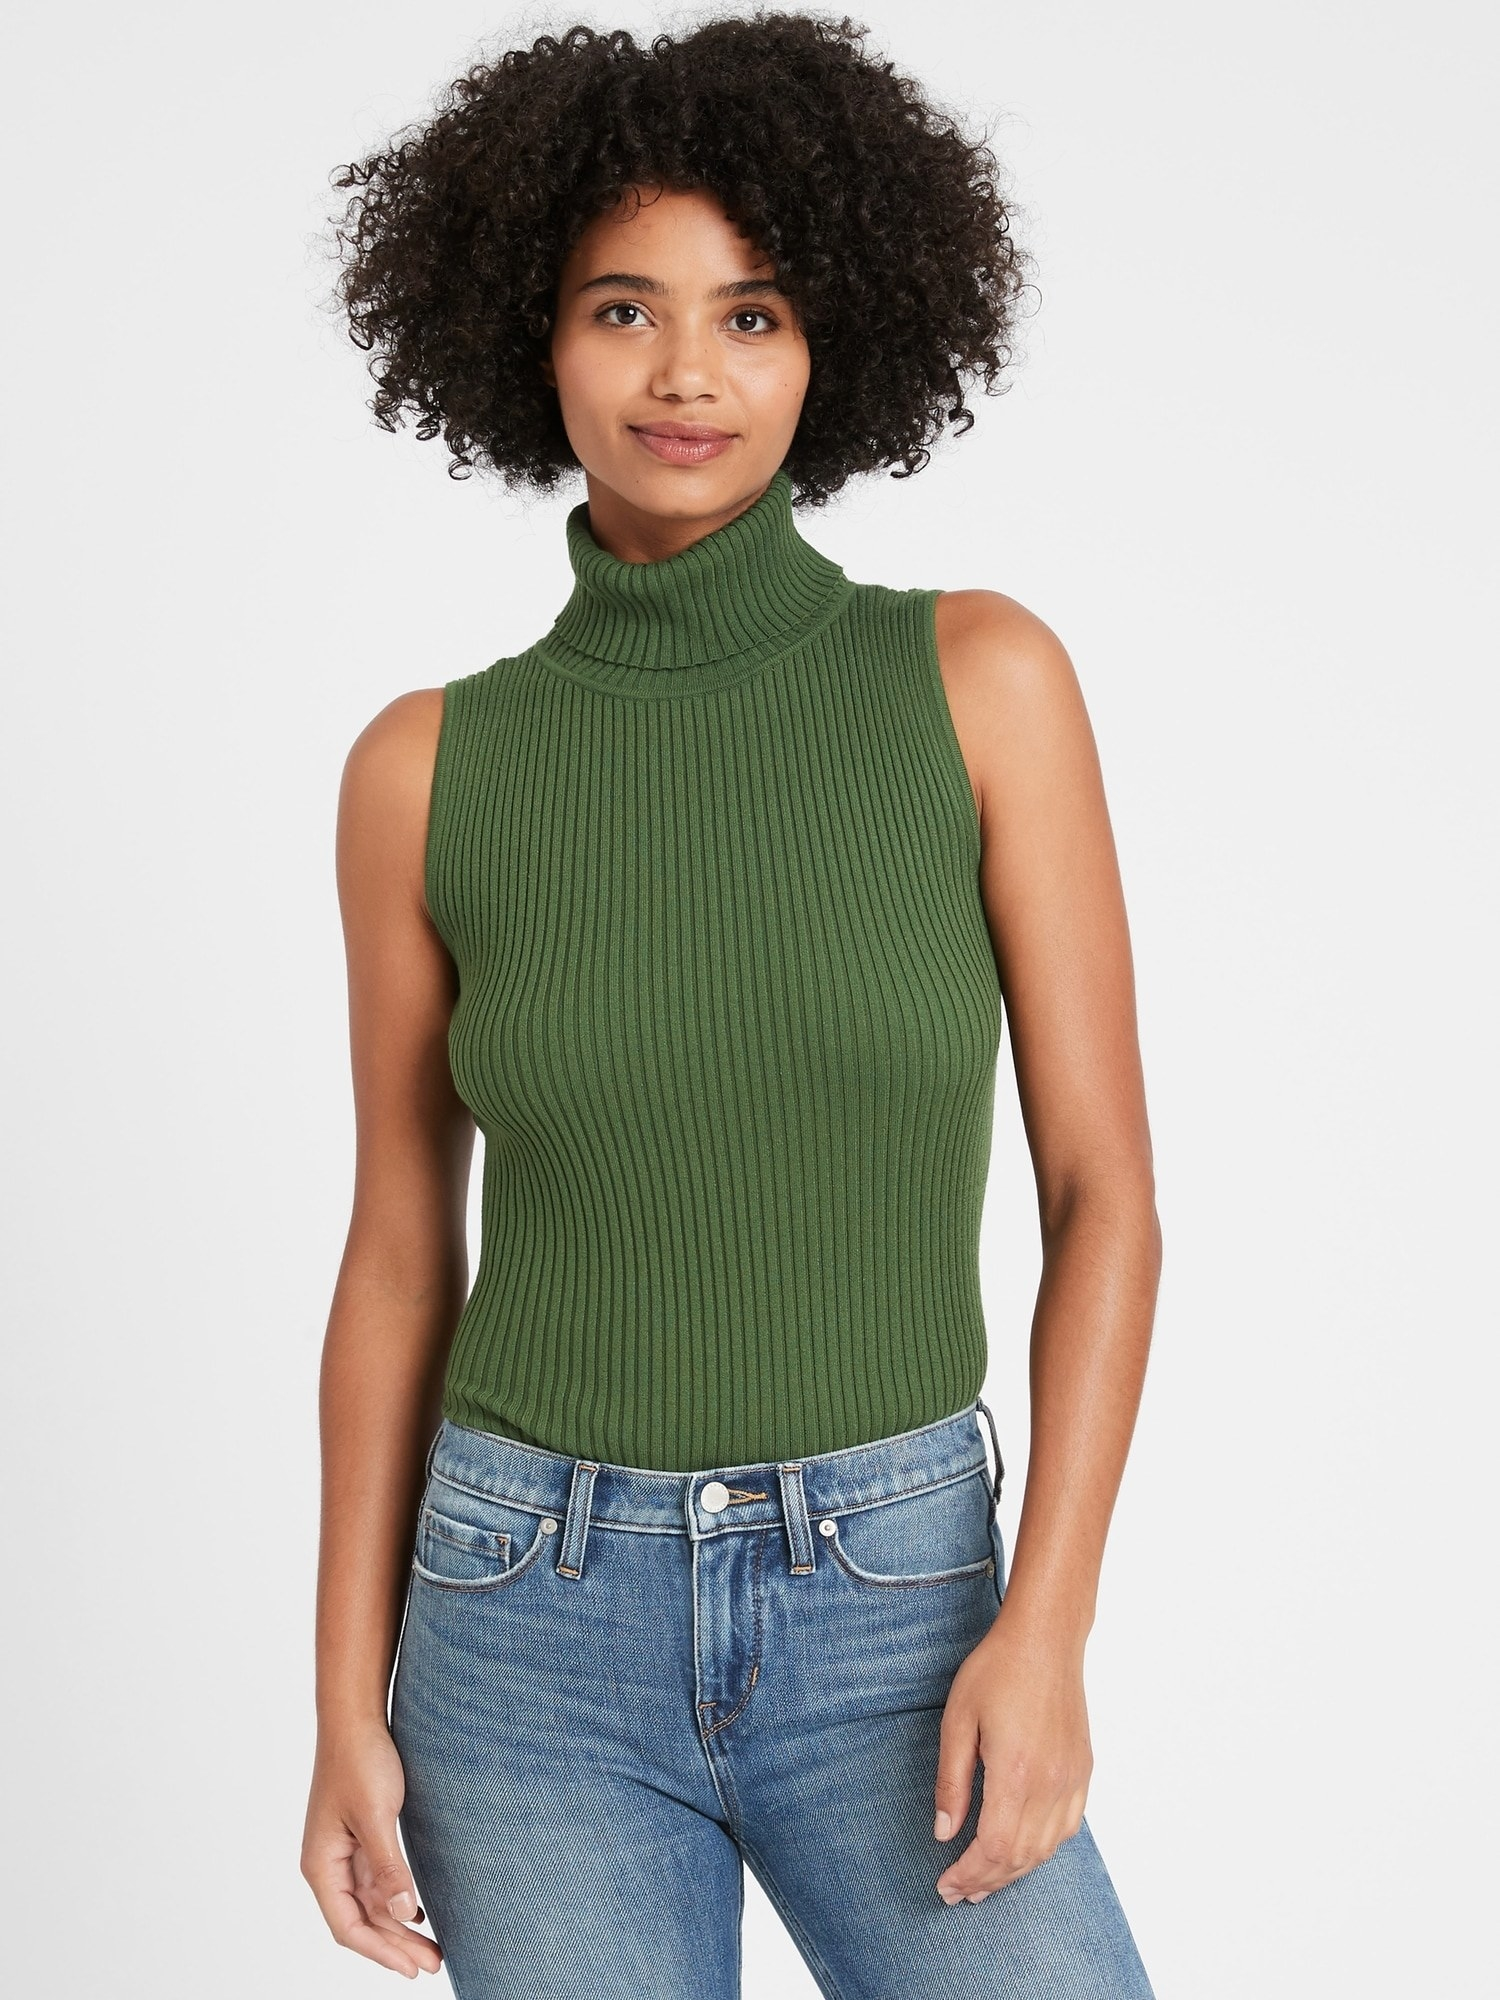 A model wearing the sweater in green